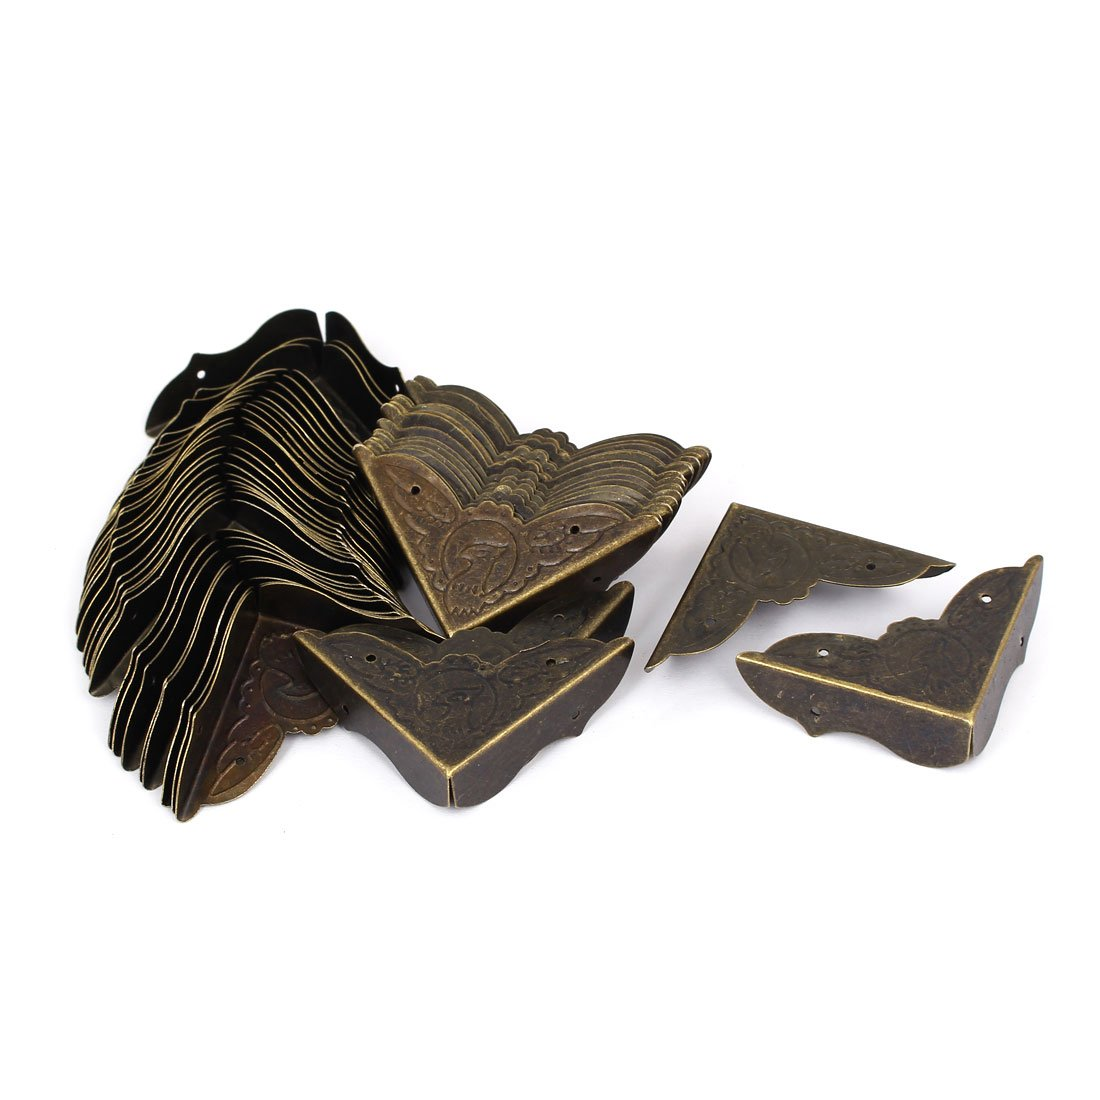 uxcell Jewelry Gift Box Corner Cover Protector Guard Bronze Tone 45mmx45mmx13mm 50pcs by uxcell